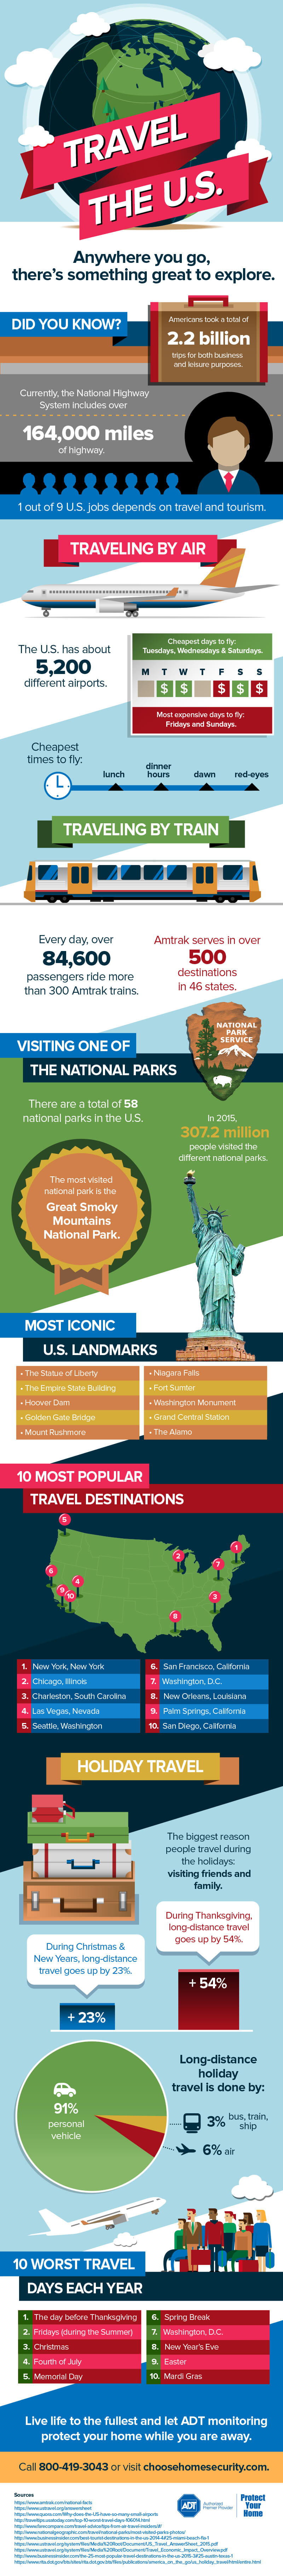 travel-usa-infographic-lkrllc